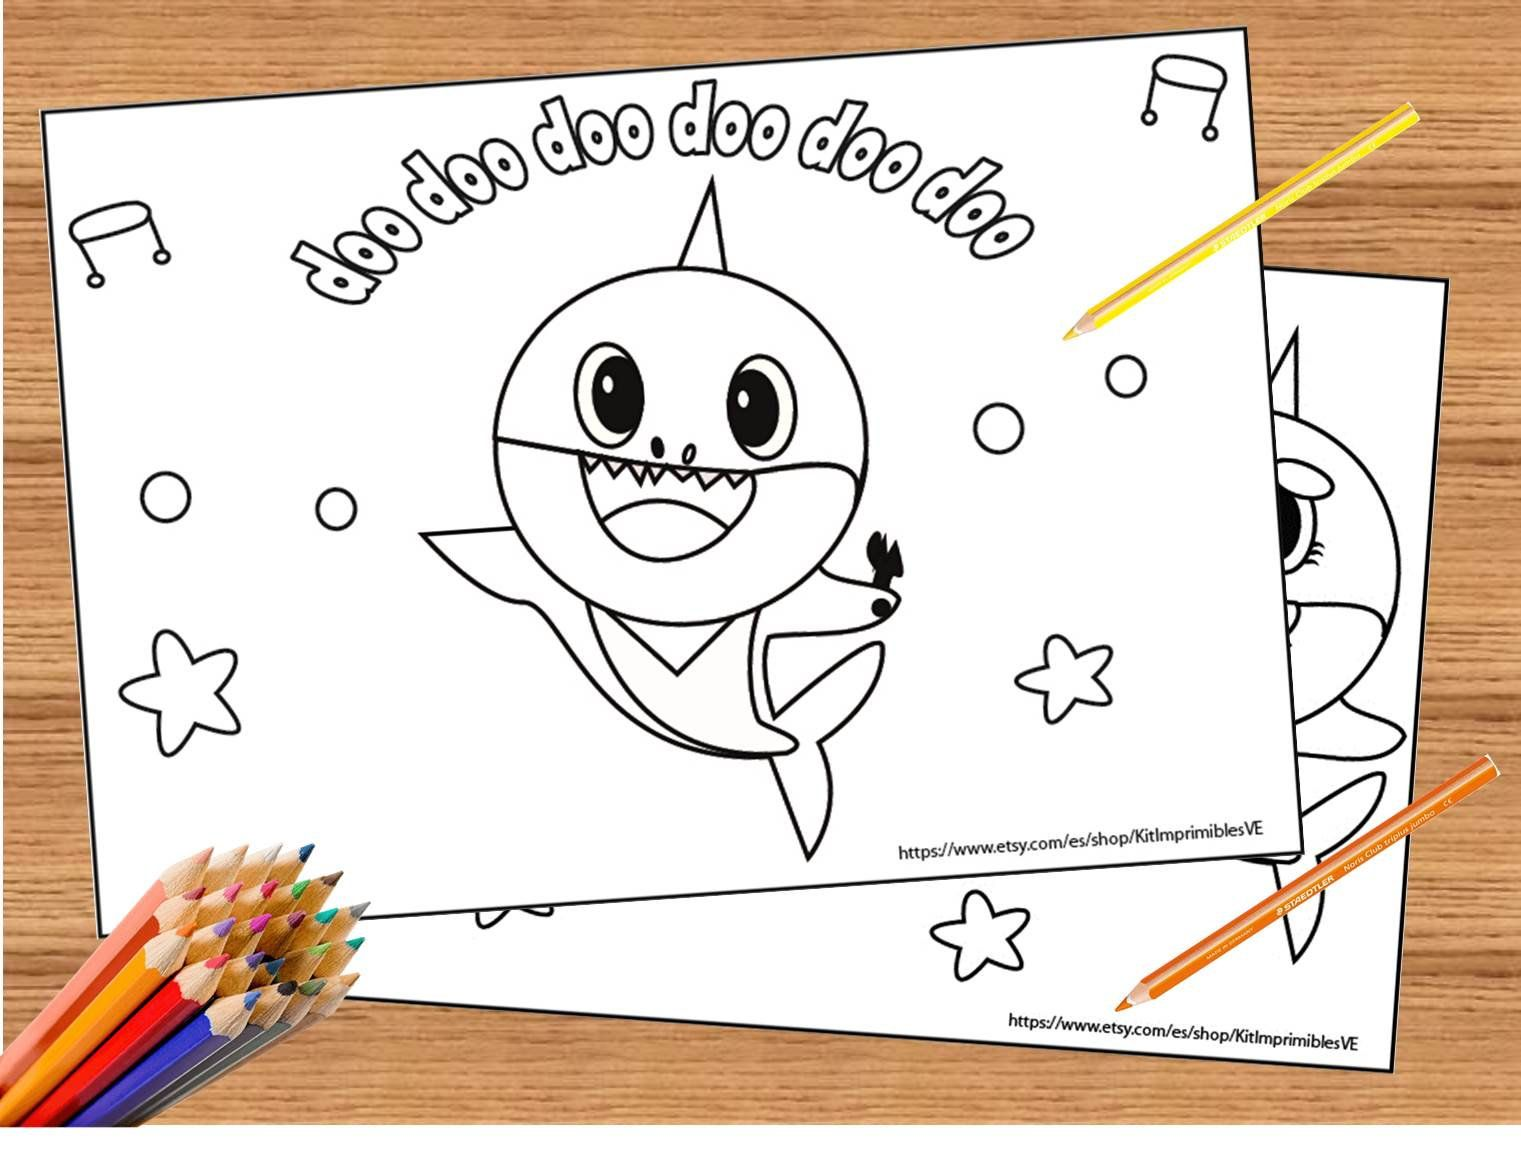 Baby Shark Song 10 Coloring Pages Super Simple Coloring Printable Baby Shark Birthday Set Of 10 Coloring Pa Baby Shark Song Baby Shark Shark Coloring Pages